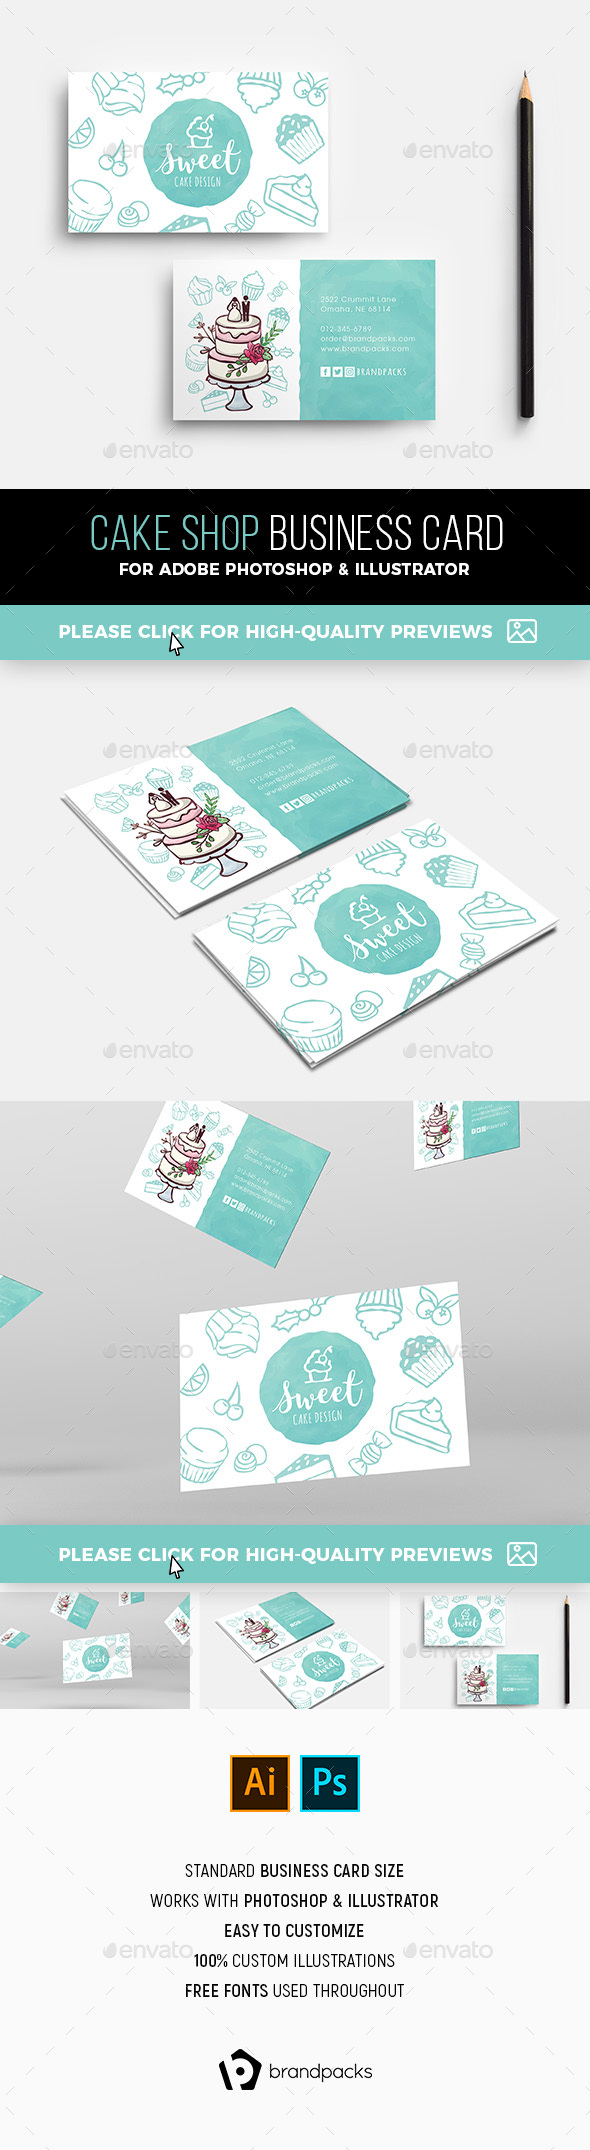 Cake Shop Business Card Template - Industry Specific Business Cards